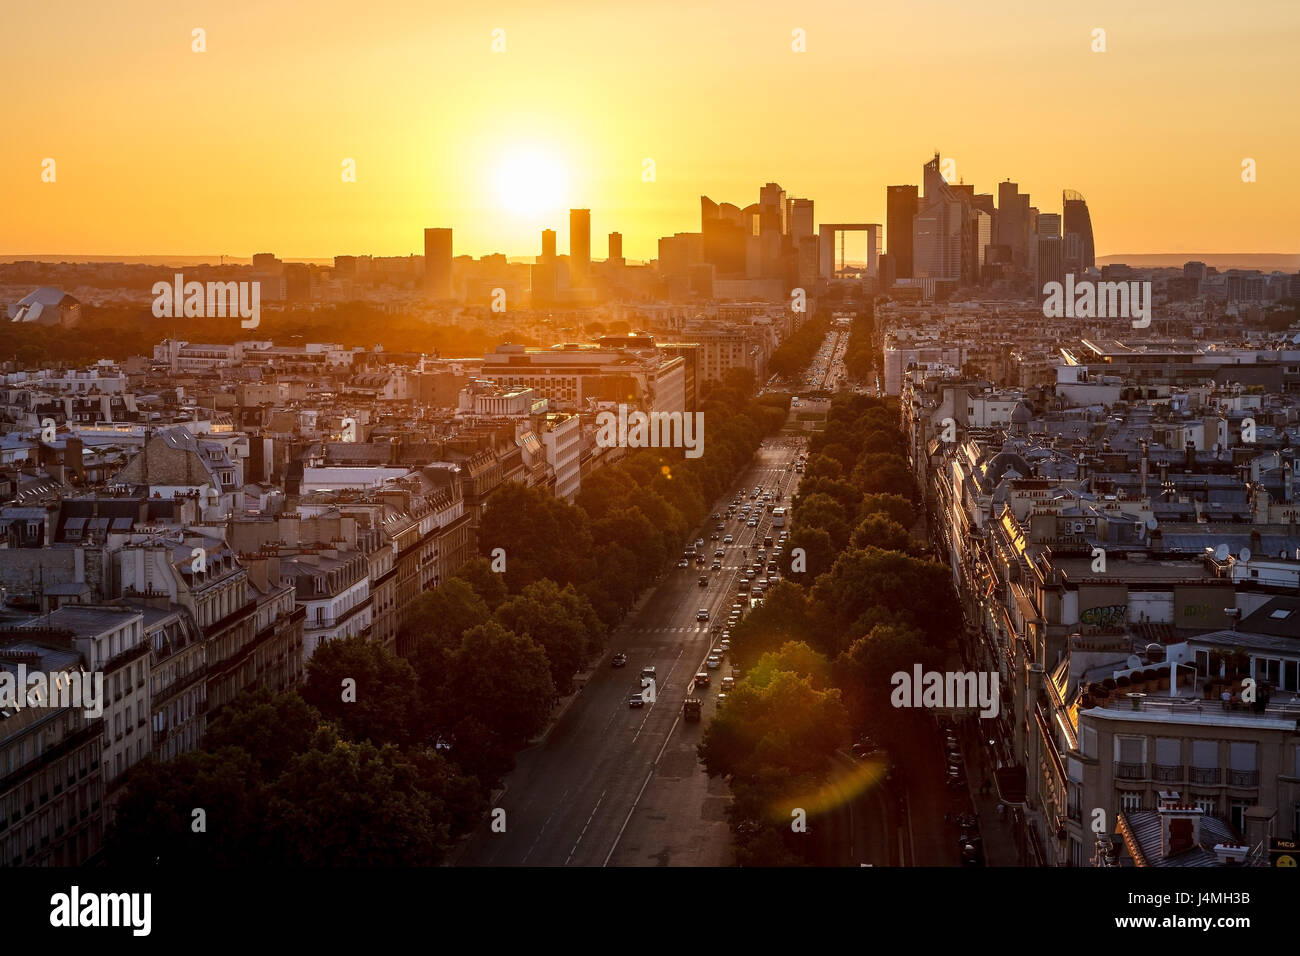 Avenue de la Grande Armee and La Defense neighborhood in Paris at sunset. France - Stock Image